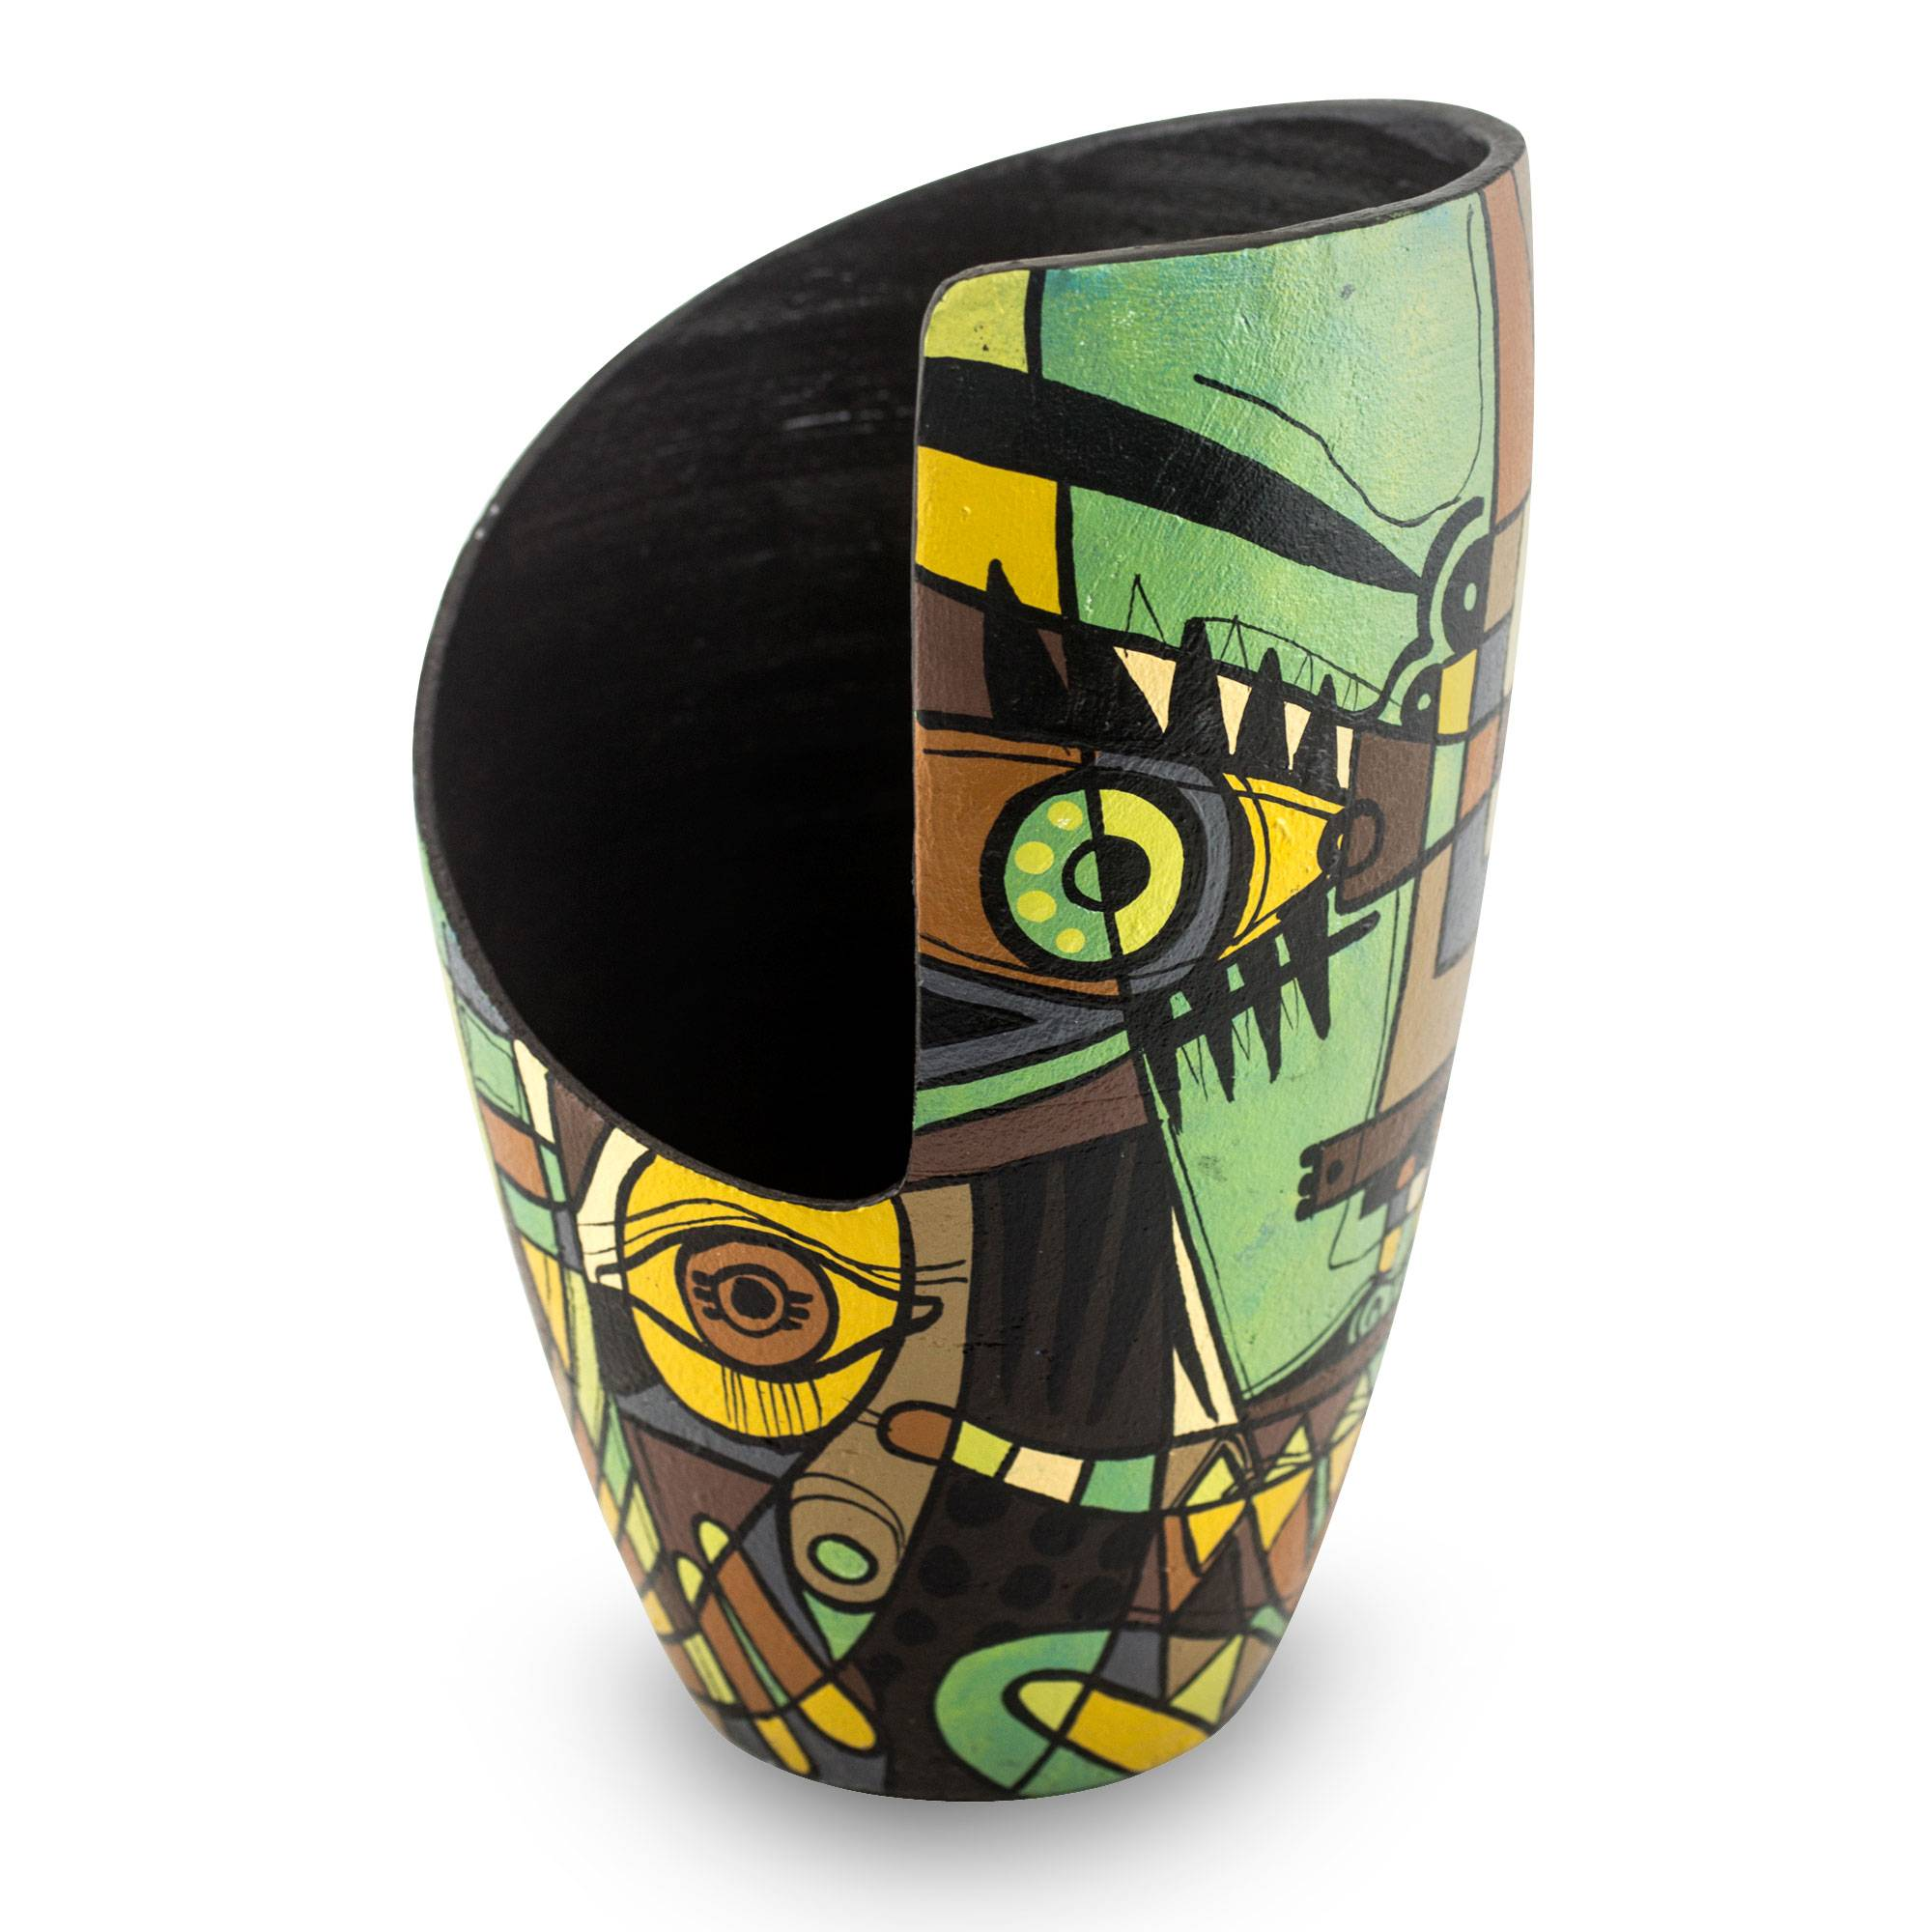 decorative ceramic vase with hand painted abstract art abstract glance novica